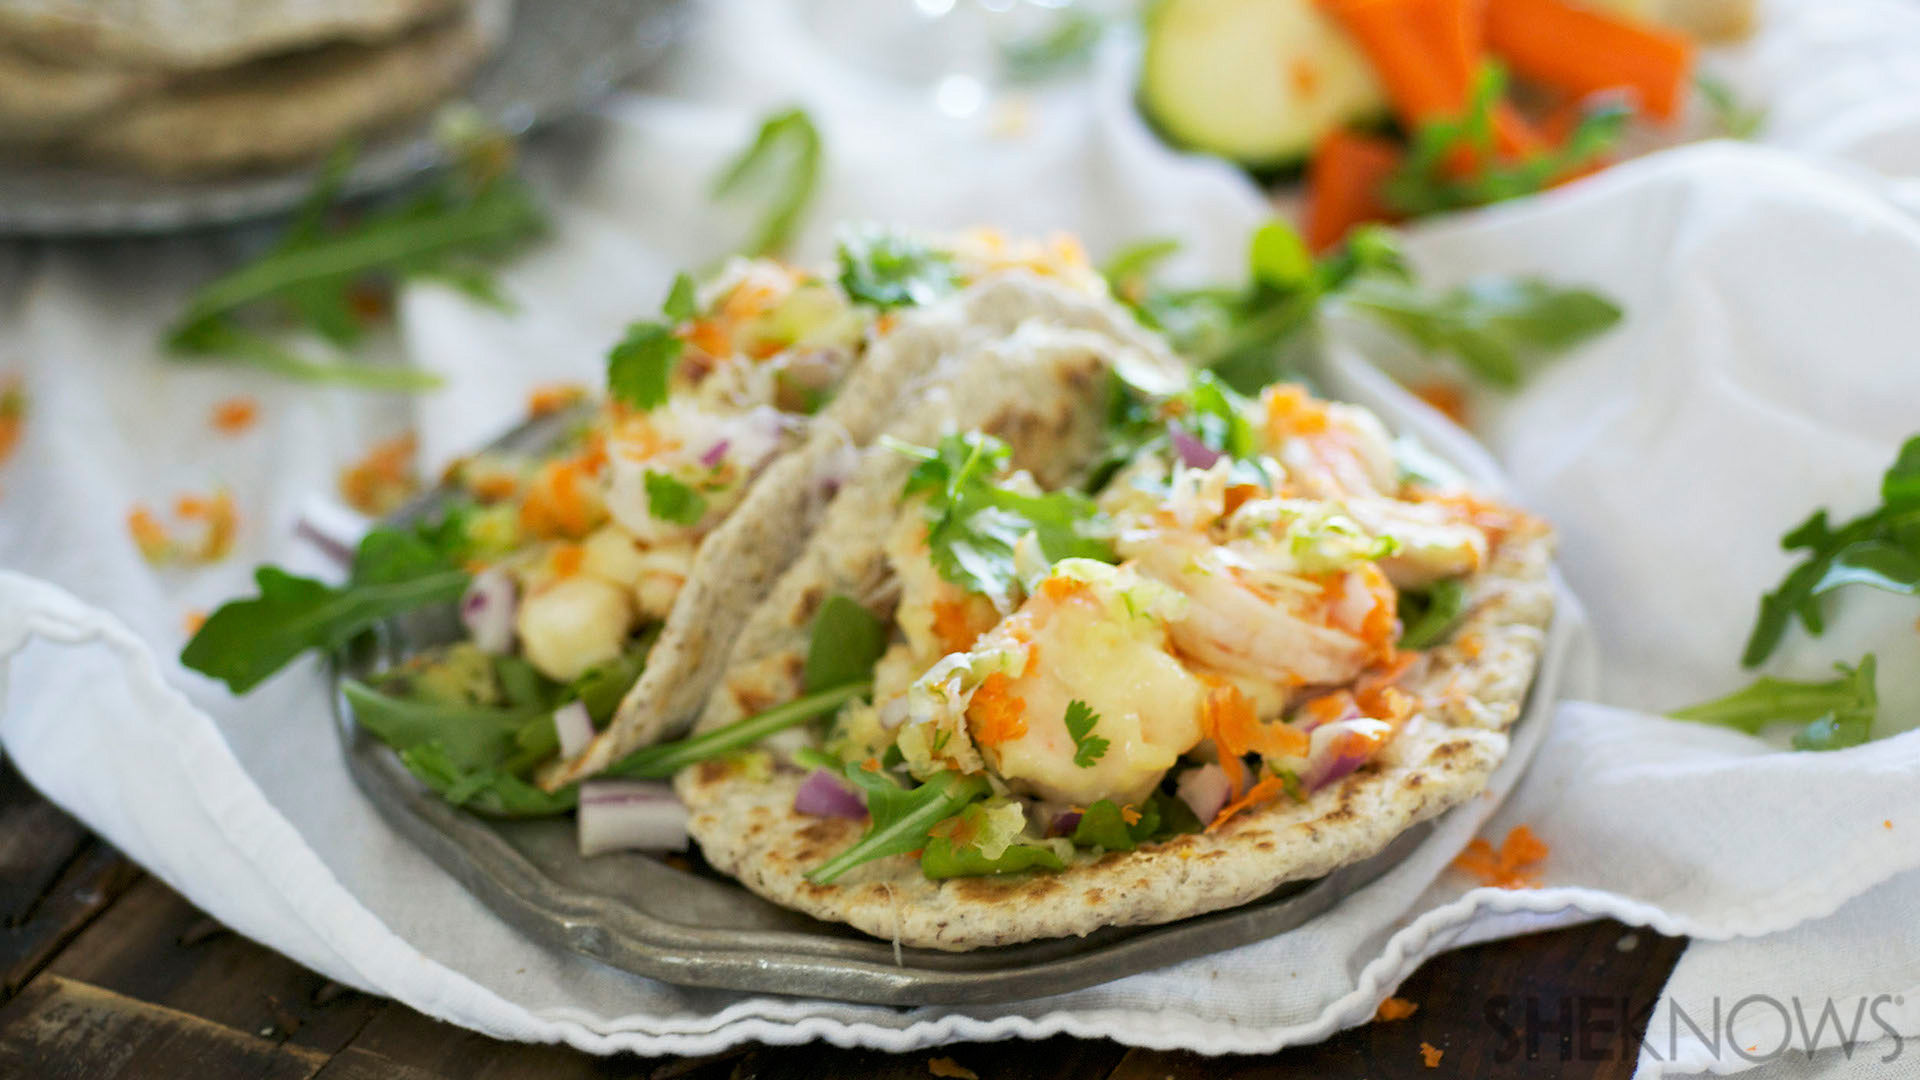 Tempura shrimp & veggie tacos in fluffy flax seed tortillas